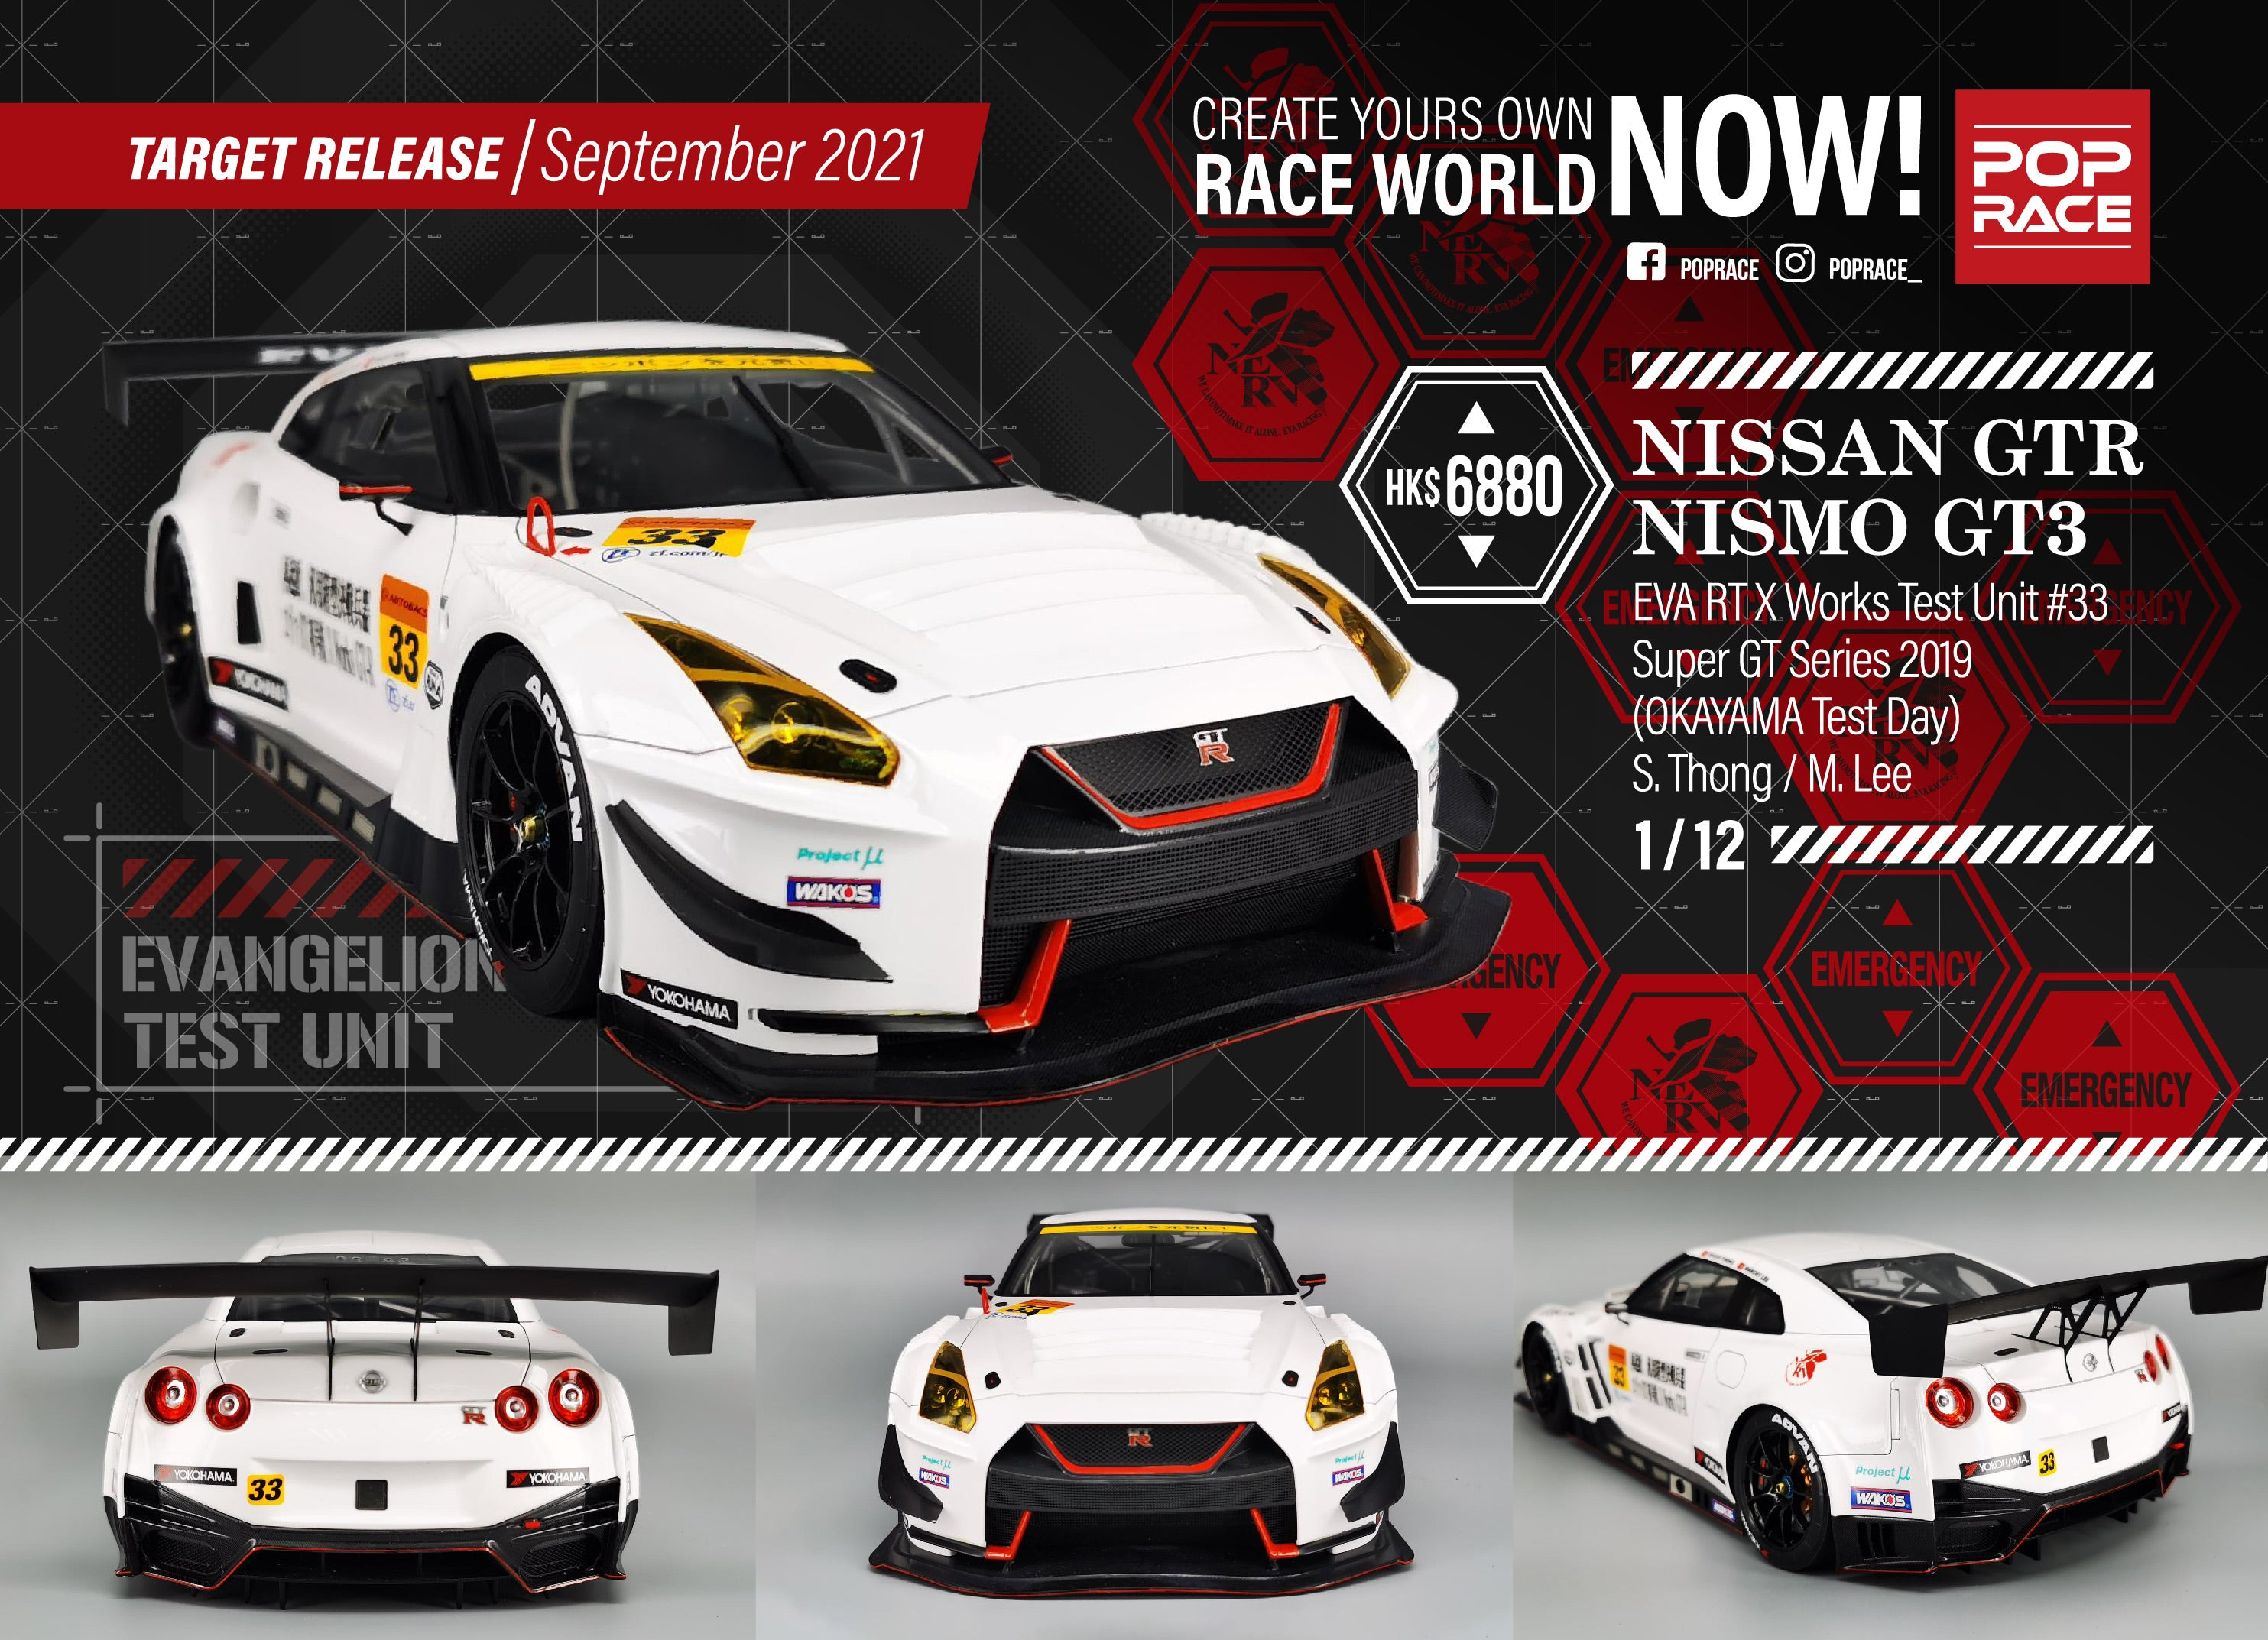 *PRE ORDER* 1/12 Nissan GT-R Nismo GT3 X Works/ EVA Racing Test Unit #33 - Super GT Okayama Test Day